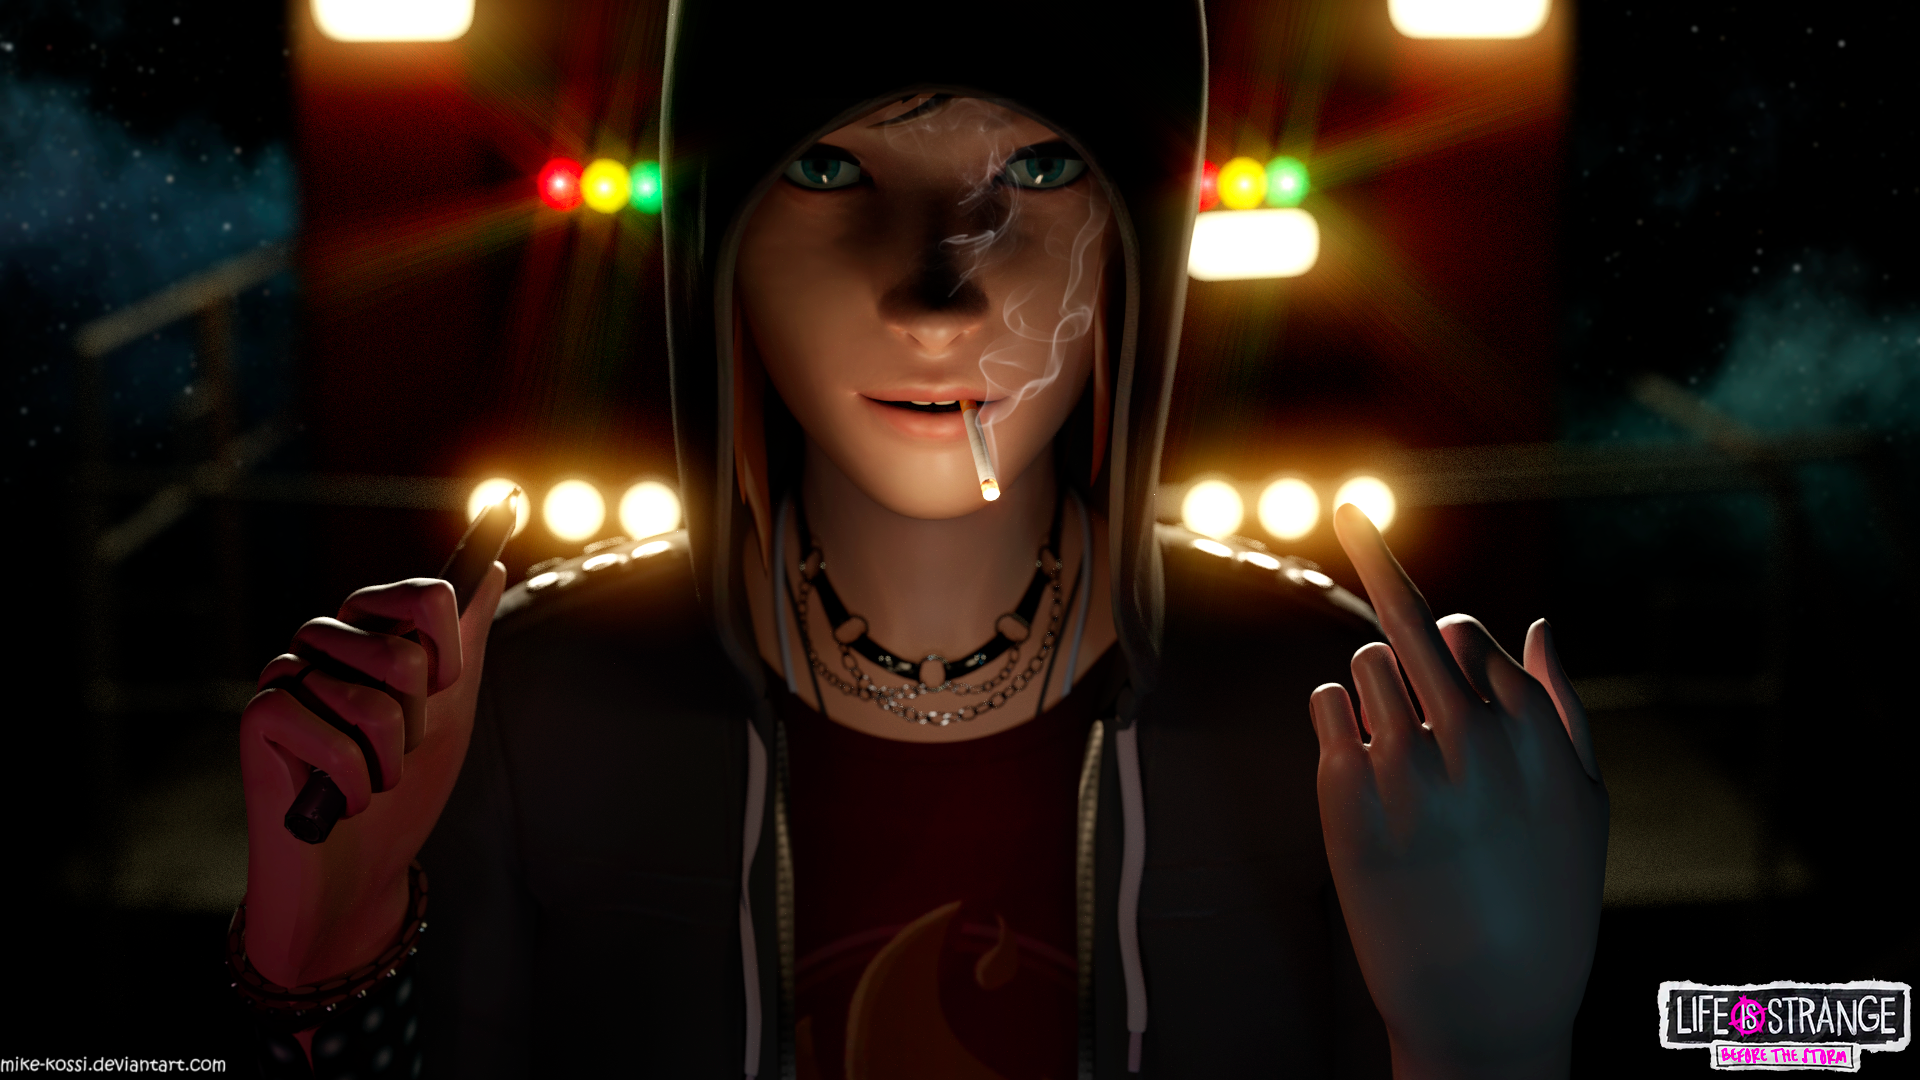 Life Is Strange 2 Wallpaper: Punk Chloe By Mike-Kossi On DeviantArt